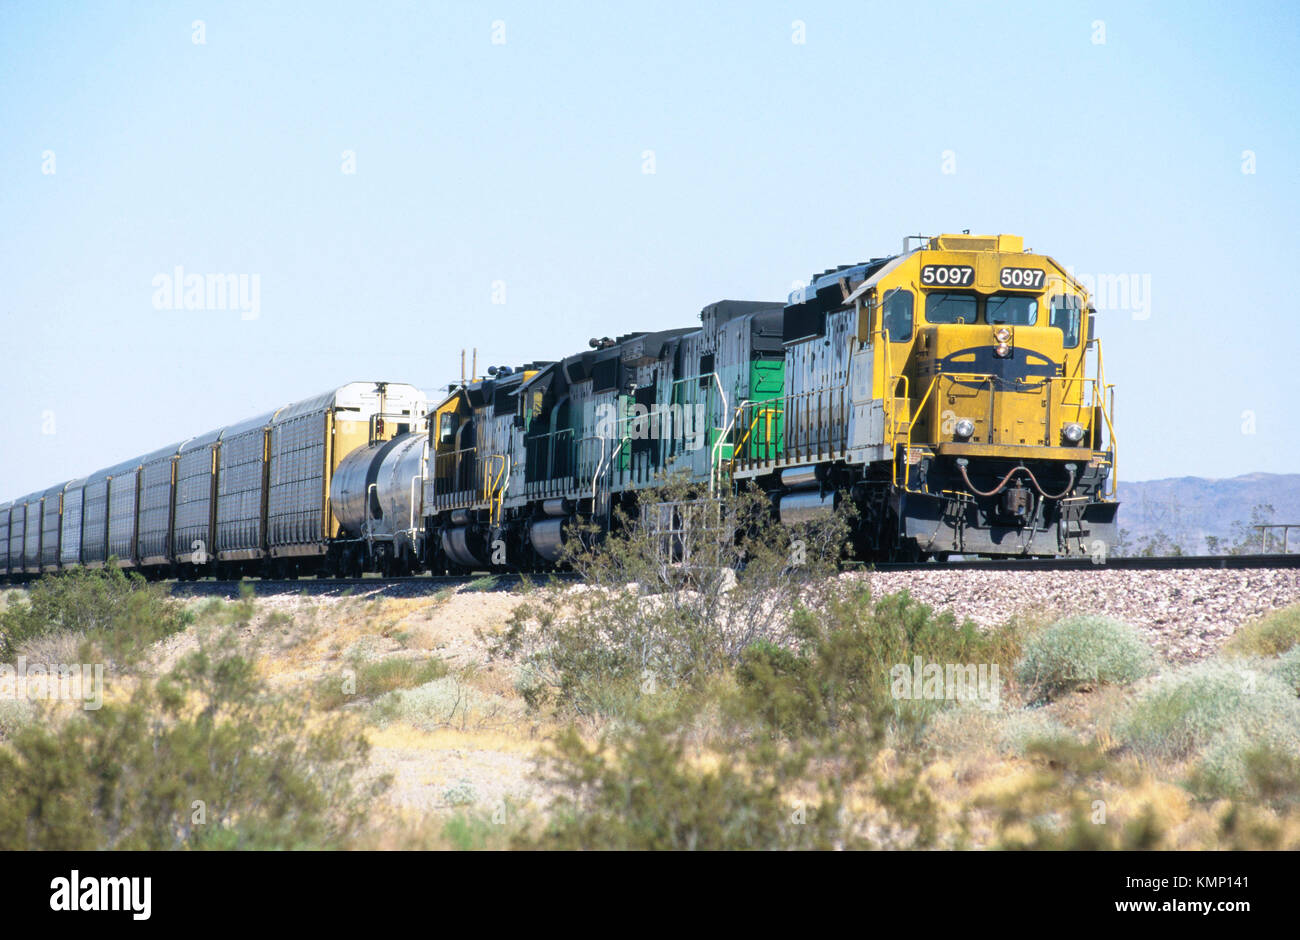 Auto-carrying express freight train, USA - Stock Image